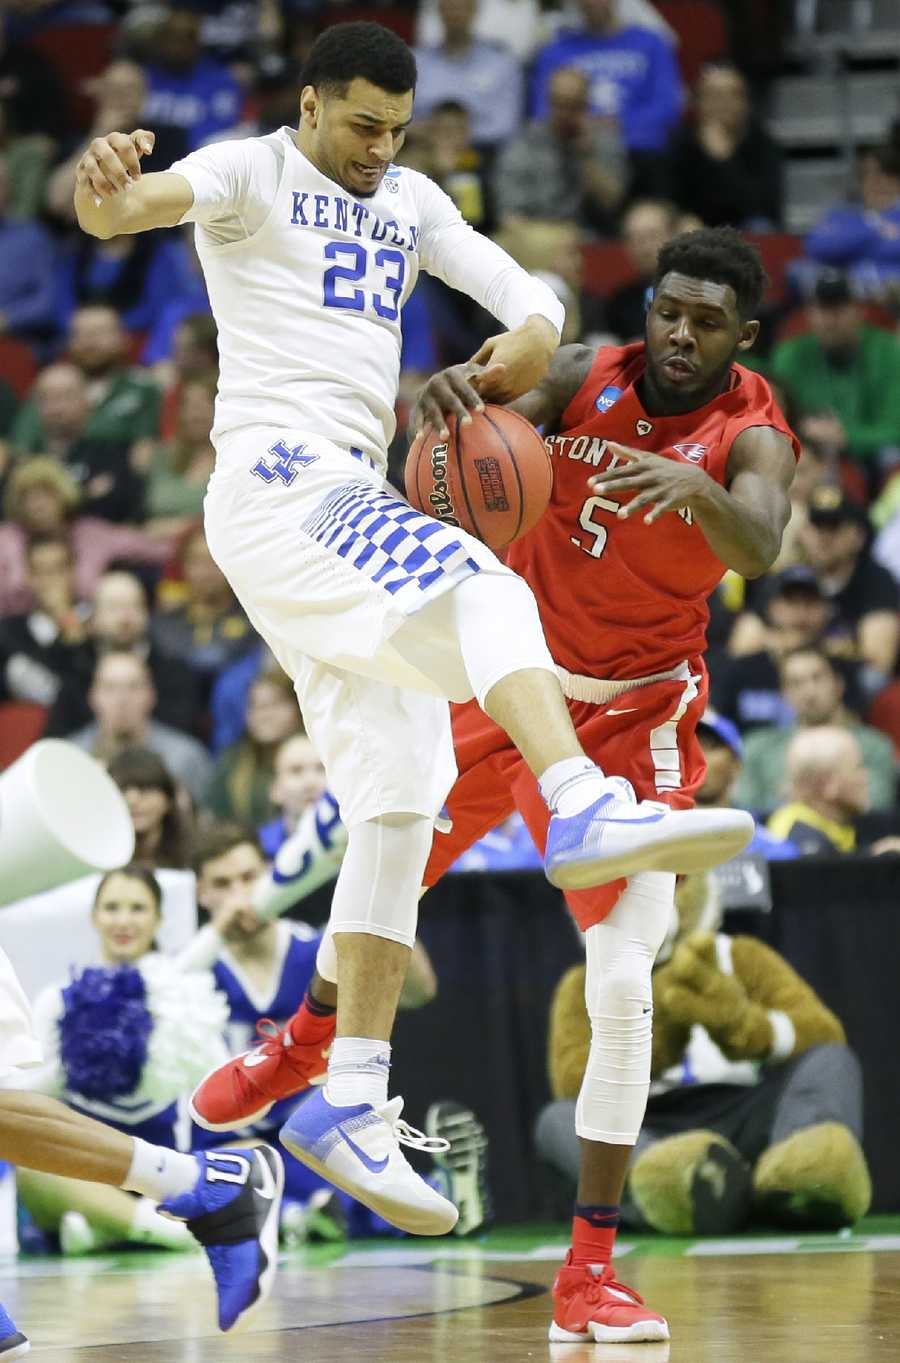 Kentucky guard Jamal Murray, left, steals the ball from Stony Brook guard Ahmad Walker during the first half of a first-round men's college basketball game in the NCAA Tournament, Thursday, March 17, 2016, in Des Moines, Iowa.